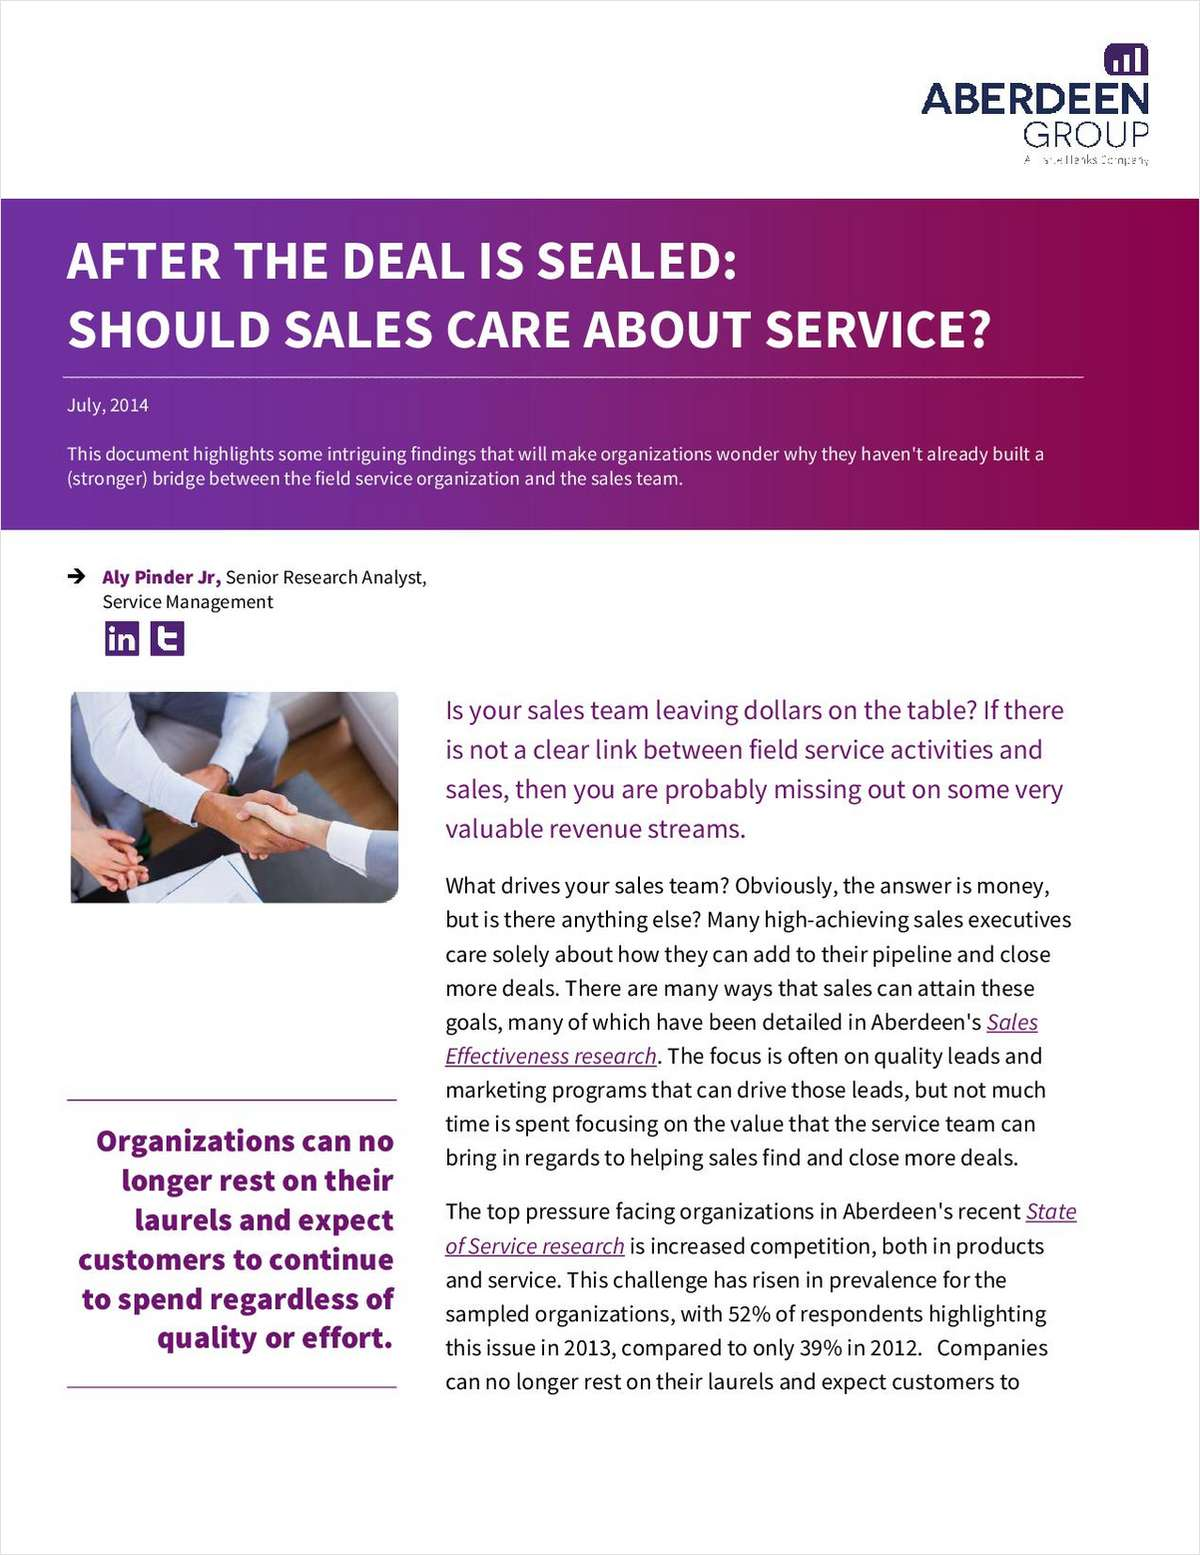 After the Deal is Sealed: Should Sales Care About Service